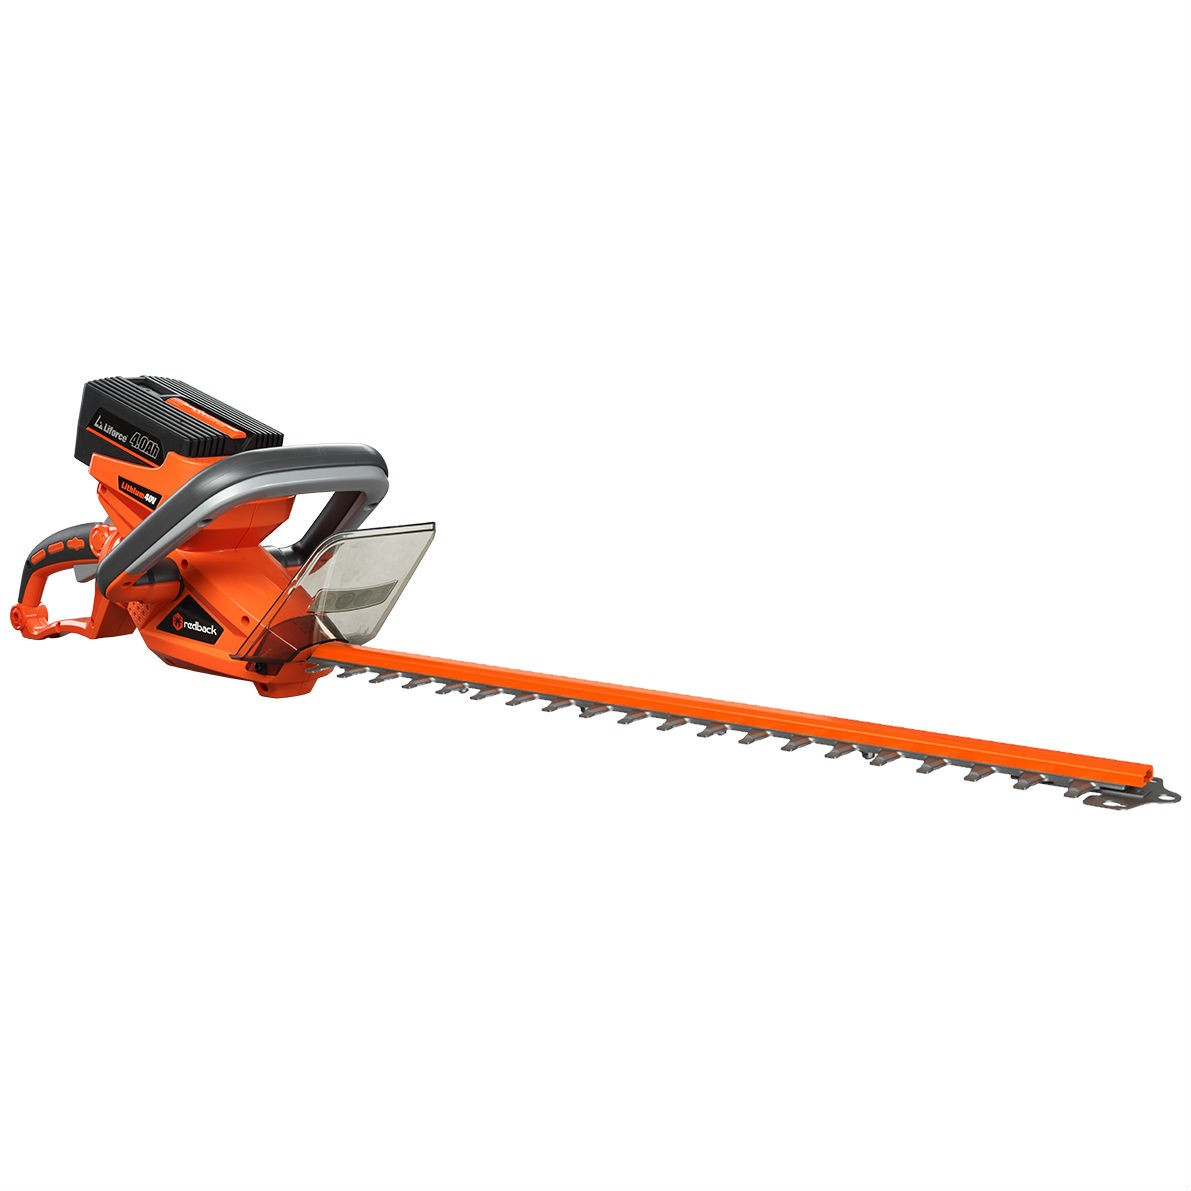 Redback E522DQ-2Ah Cordless Hedgetrimmer (Special Offer)